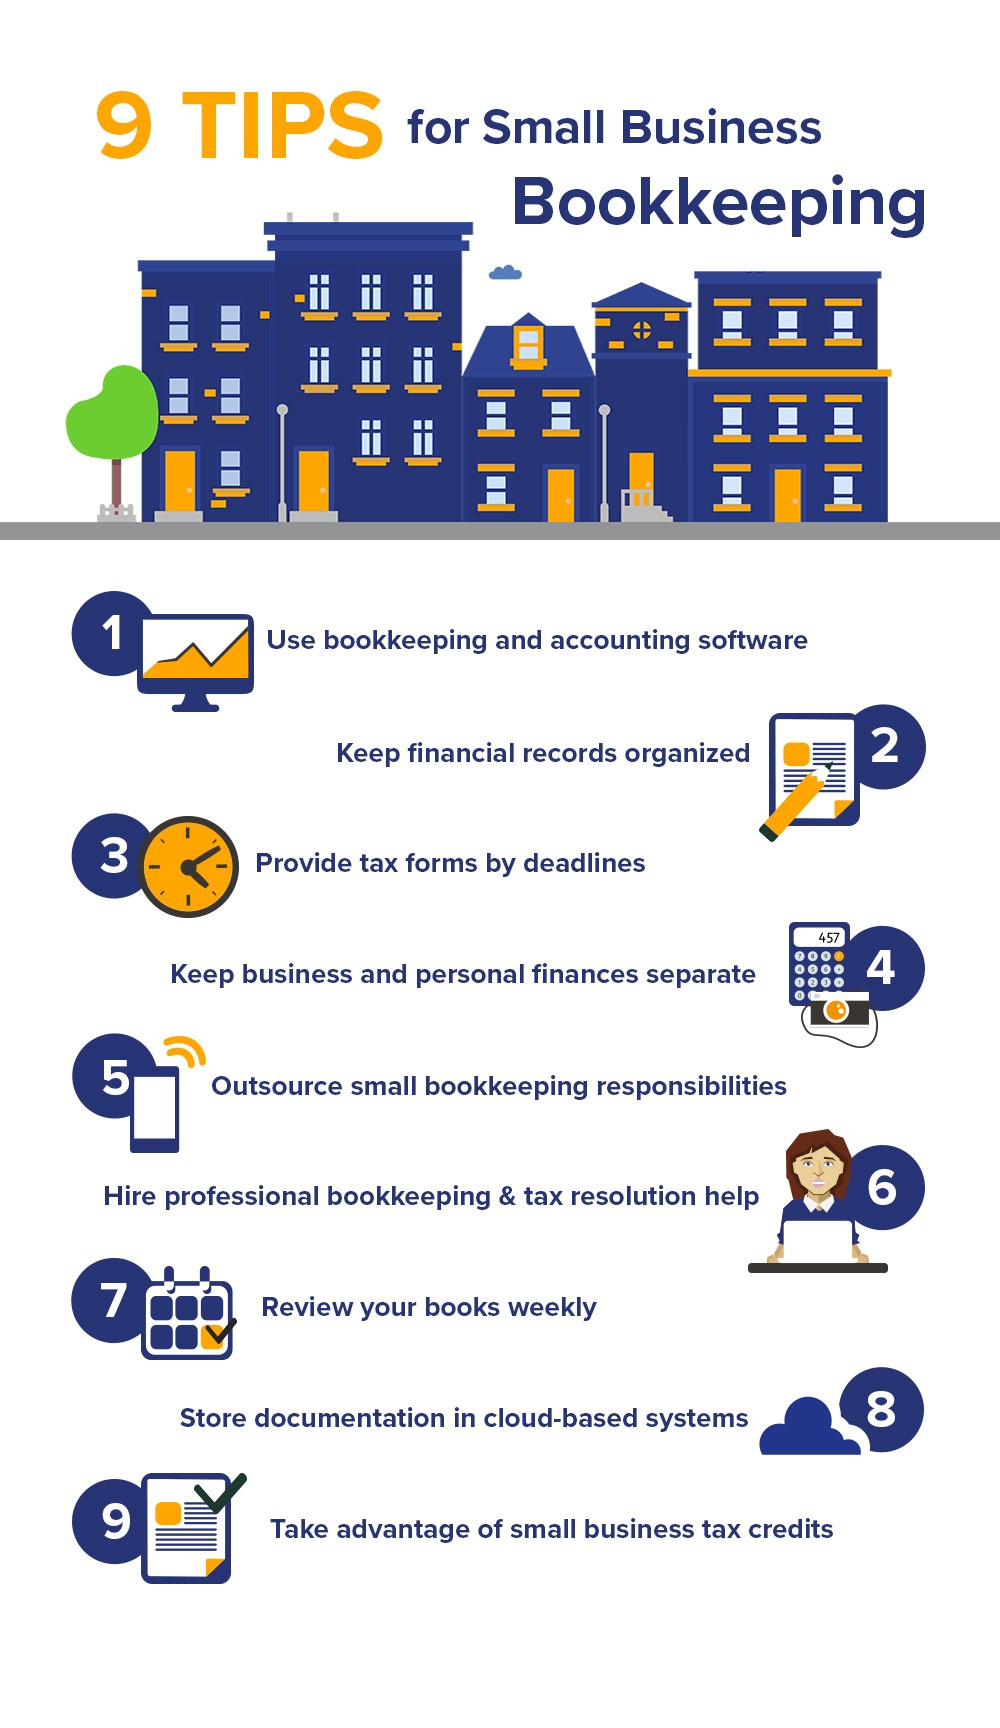 Small business bookkeeping 9 tips and tricks community tax whether you plan on handling your small business bookkeeping yourself or hiring a professional bookkeeper its important to understand best practices for solutioingenieria Images